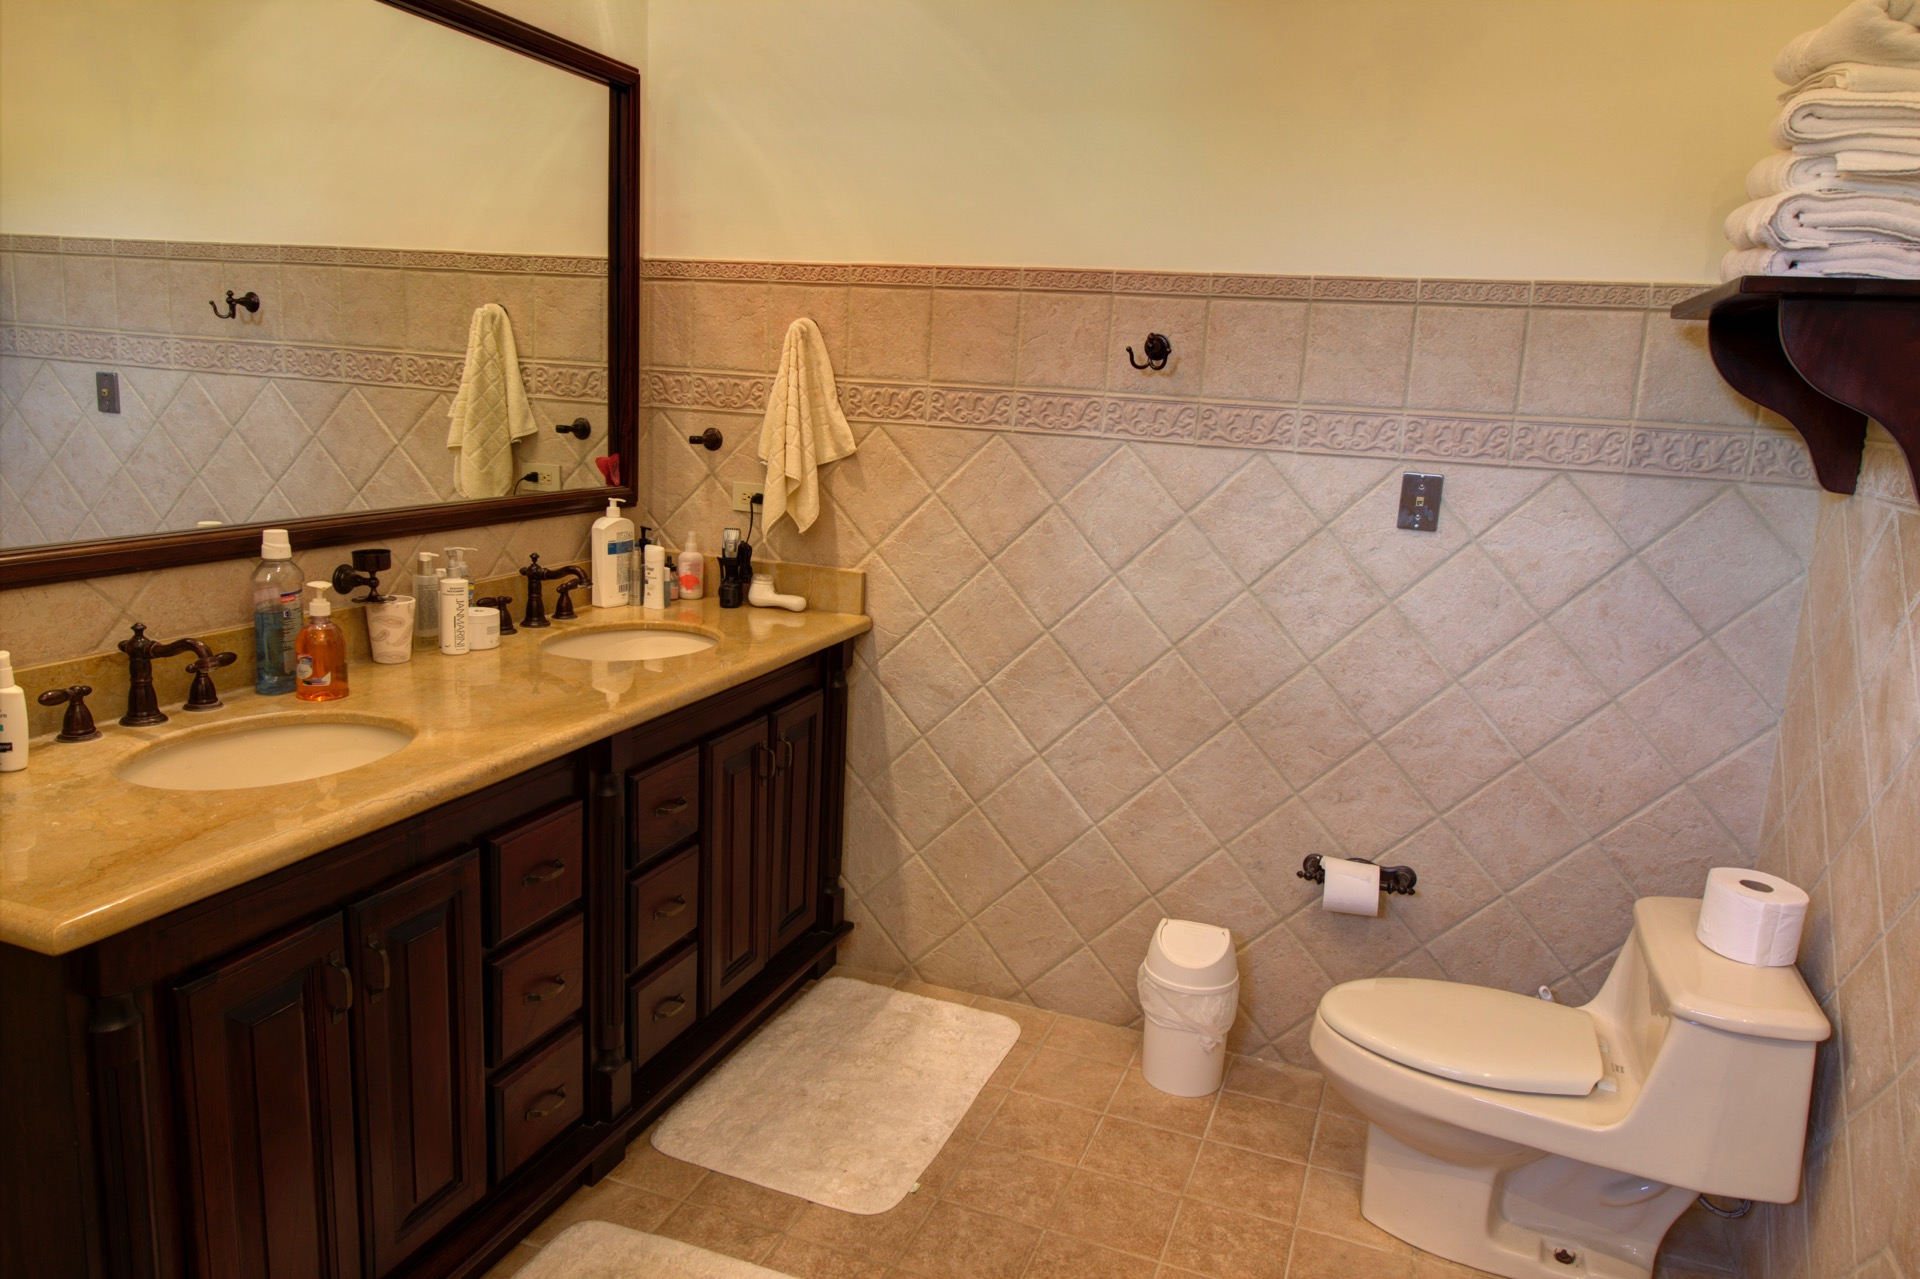 Bathroom for couples with shower and beach towels